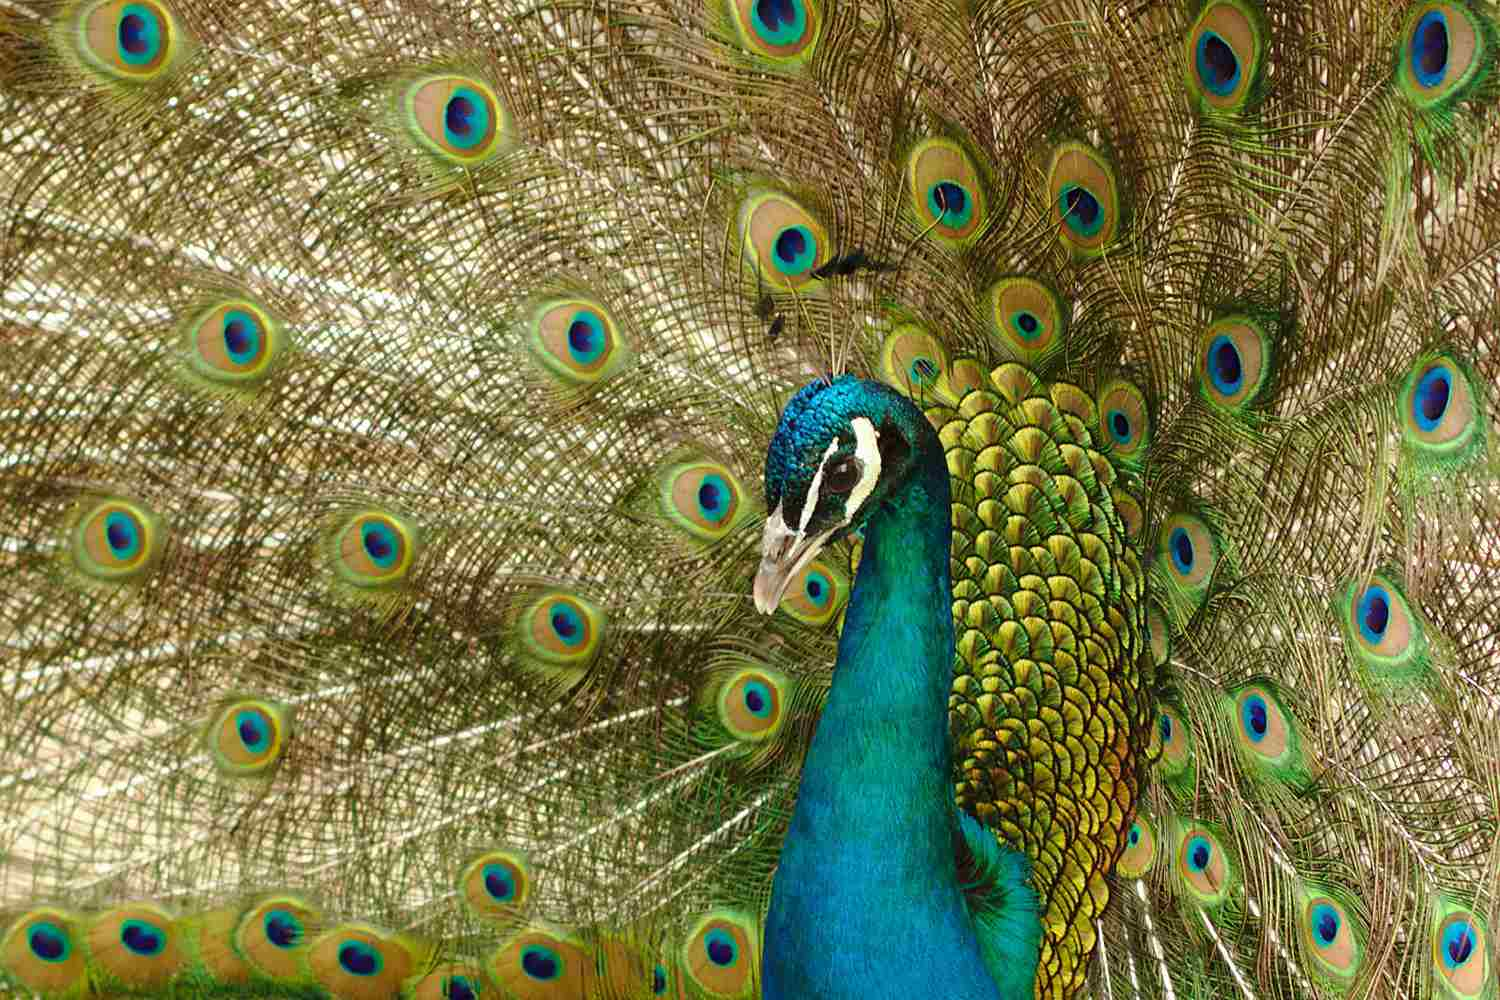 Closeup of peacock with tail feathers on display